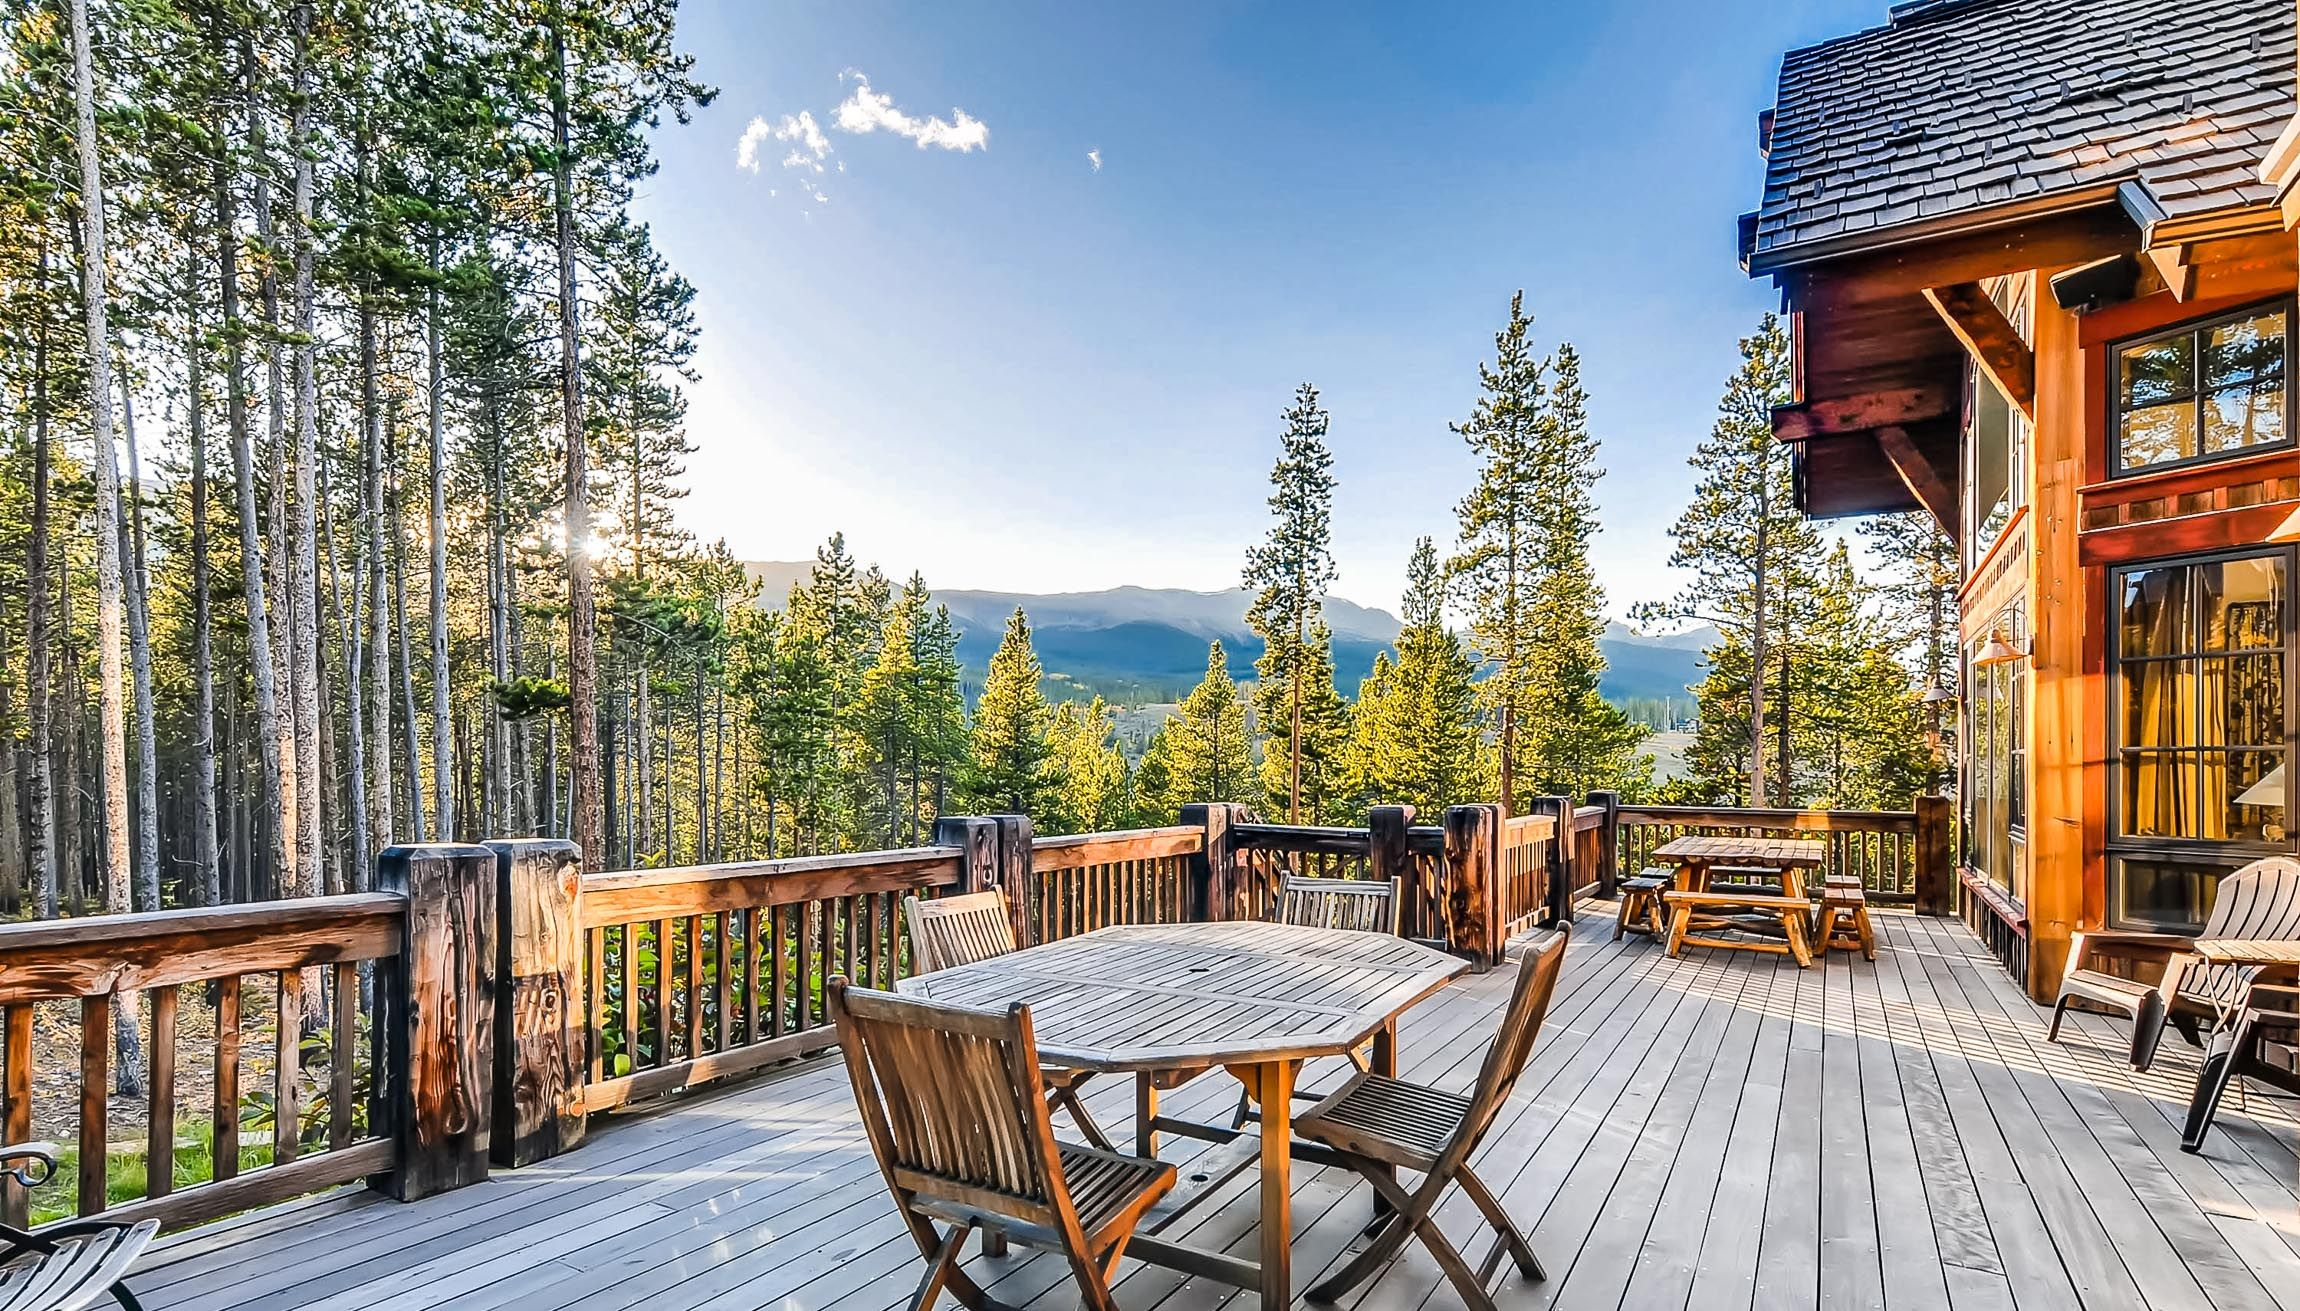 Check Out This Amazing Luxury Retreats Property In Colorado Breckenridge With 8 Bedrooms Browse More Photos And Read Th Chalet Breckenridge Luxury Retreats